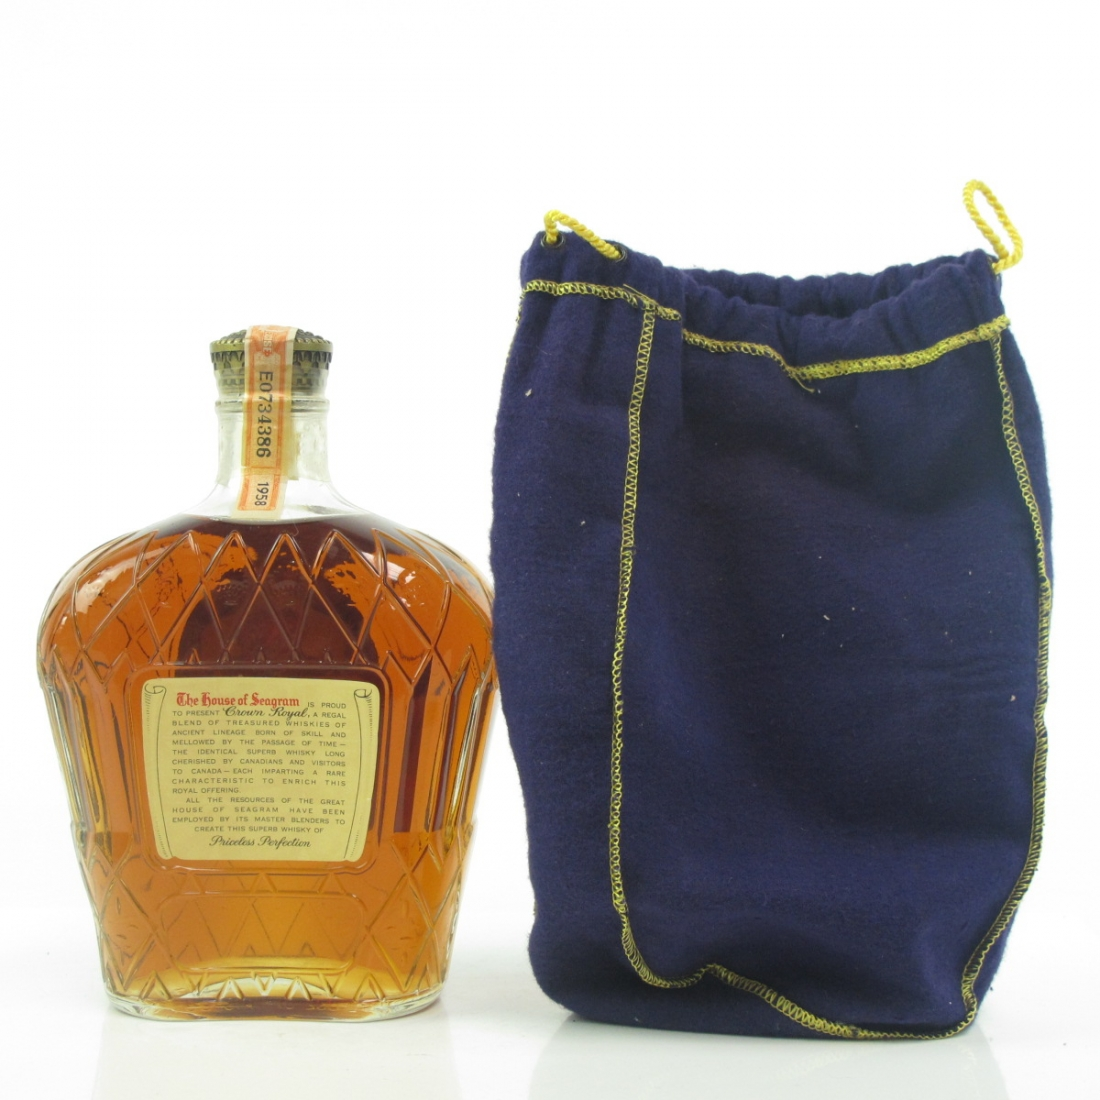 Seagram's 1958 Crown Royal Canadian Whisky